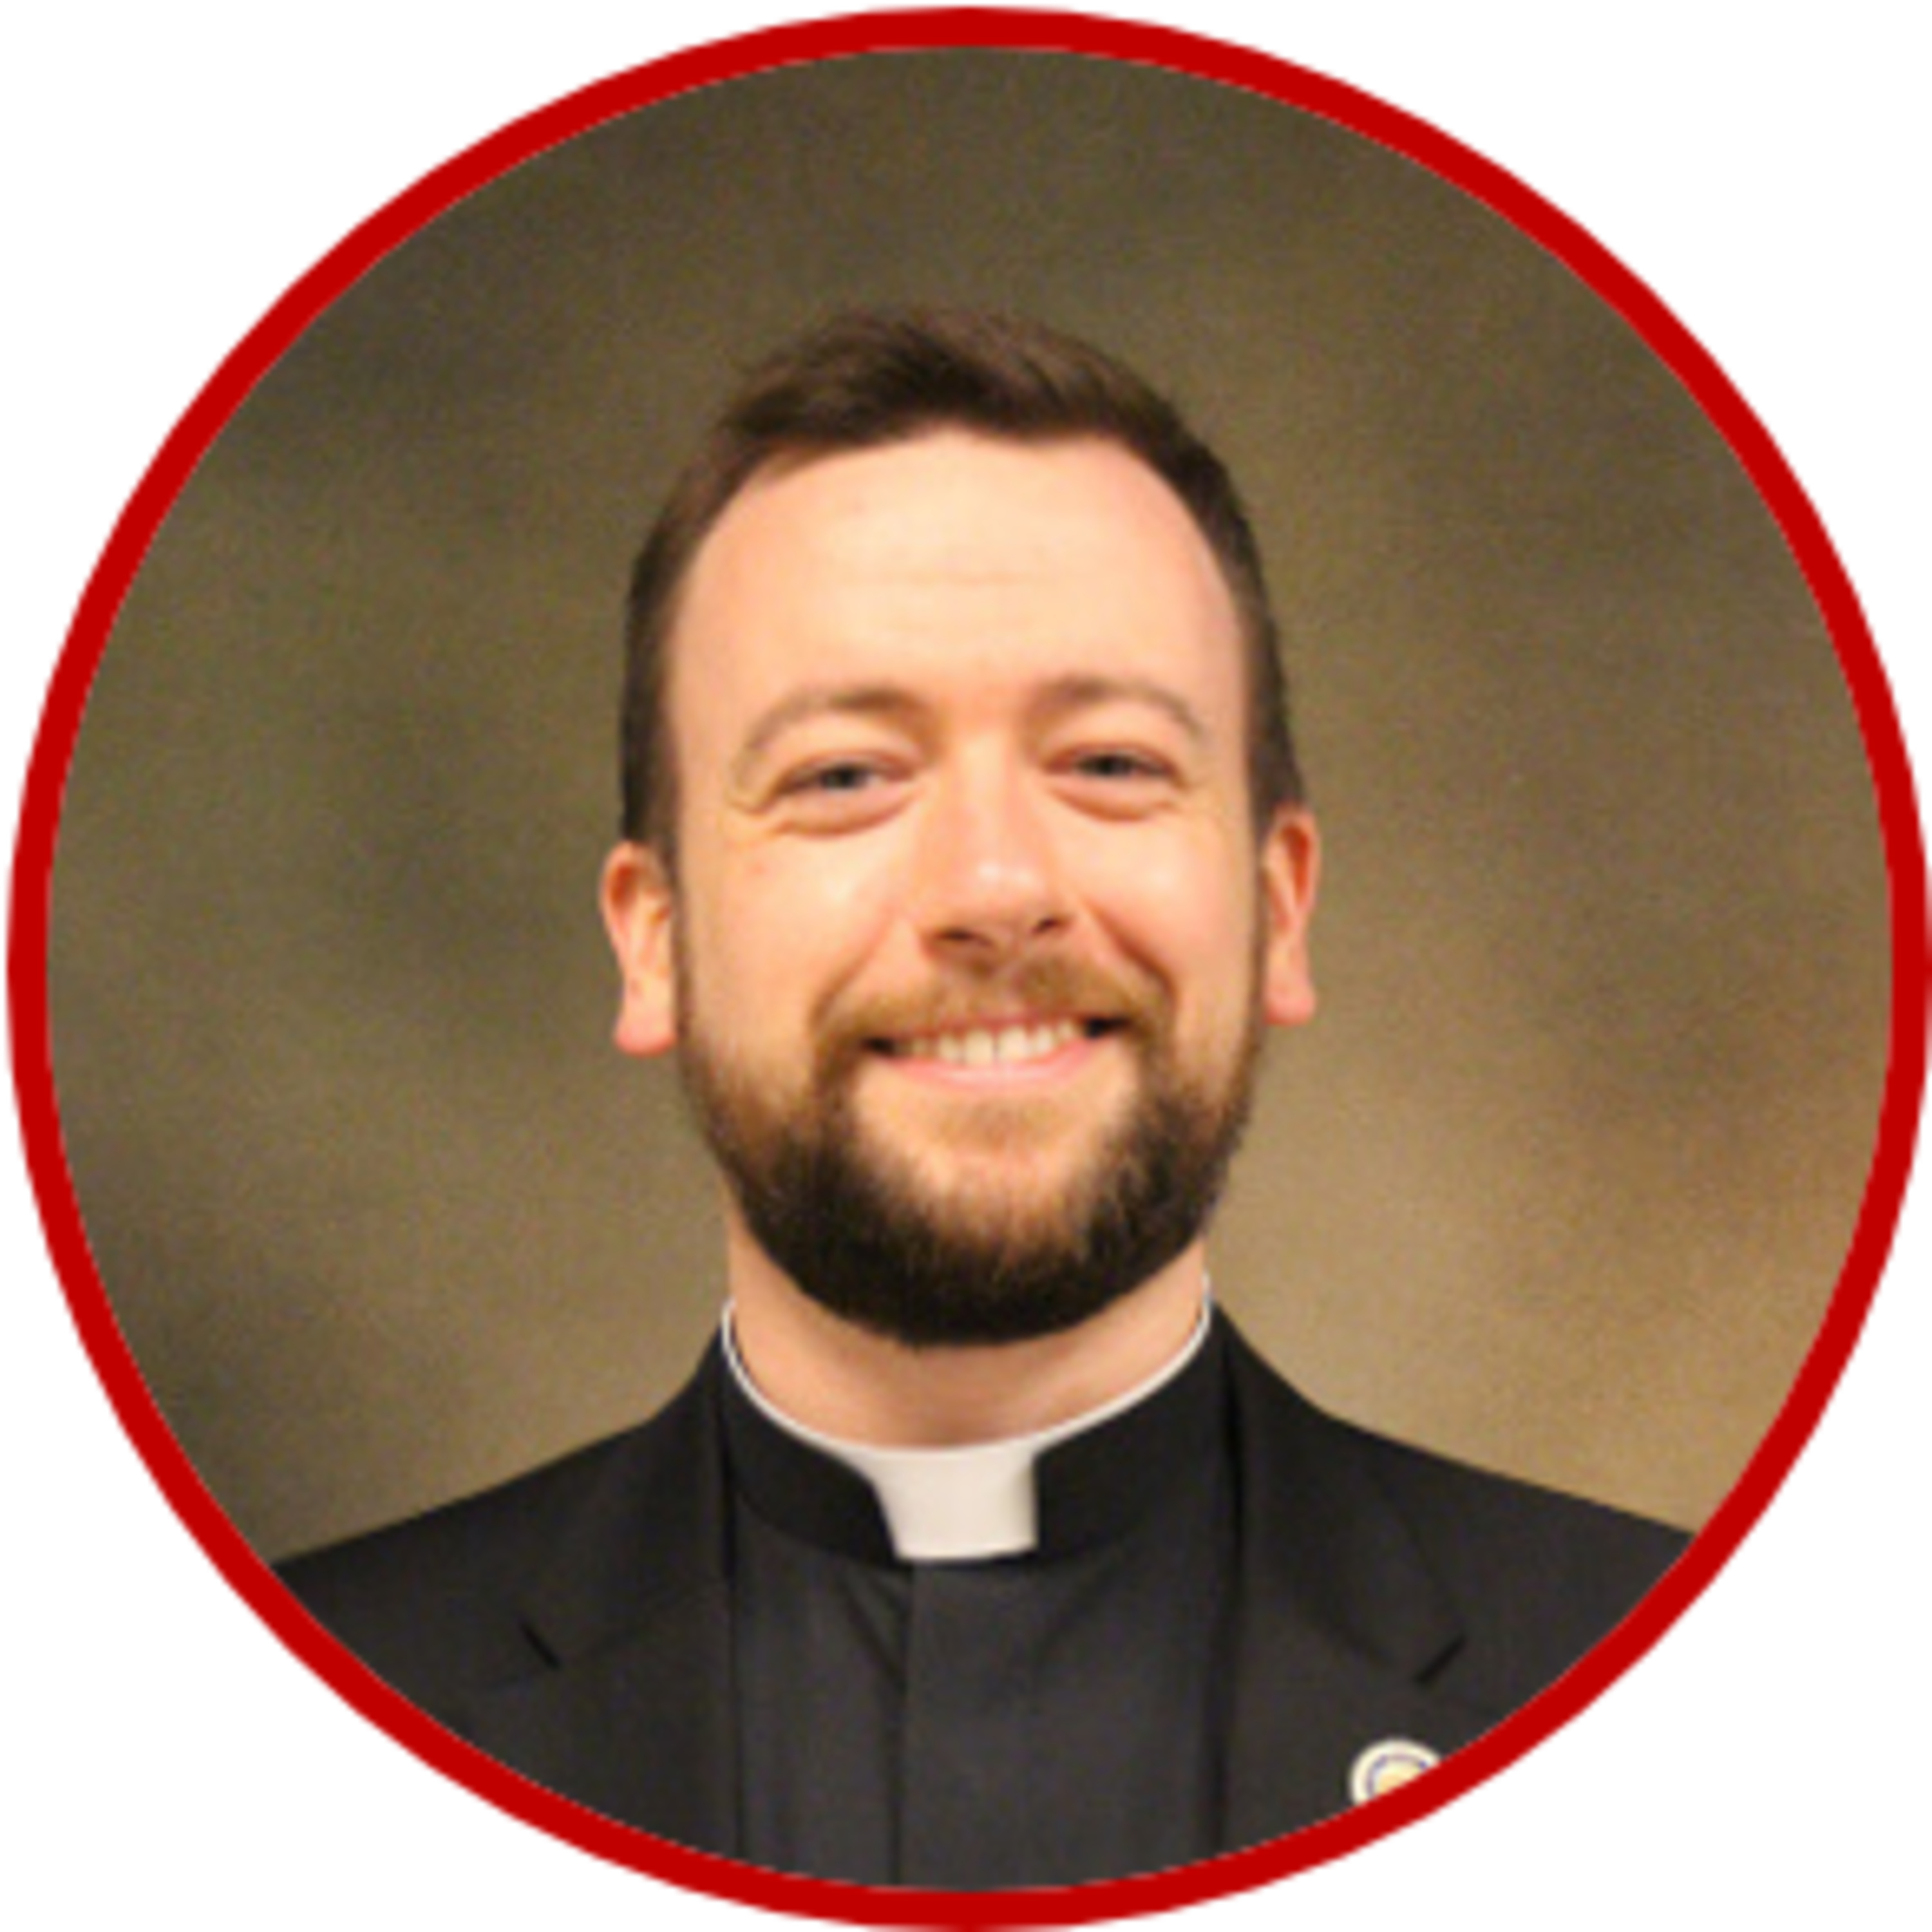 The Baptism of the Lord: Fr. Coady Owens